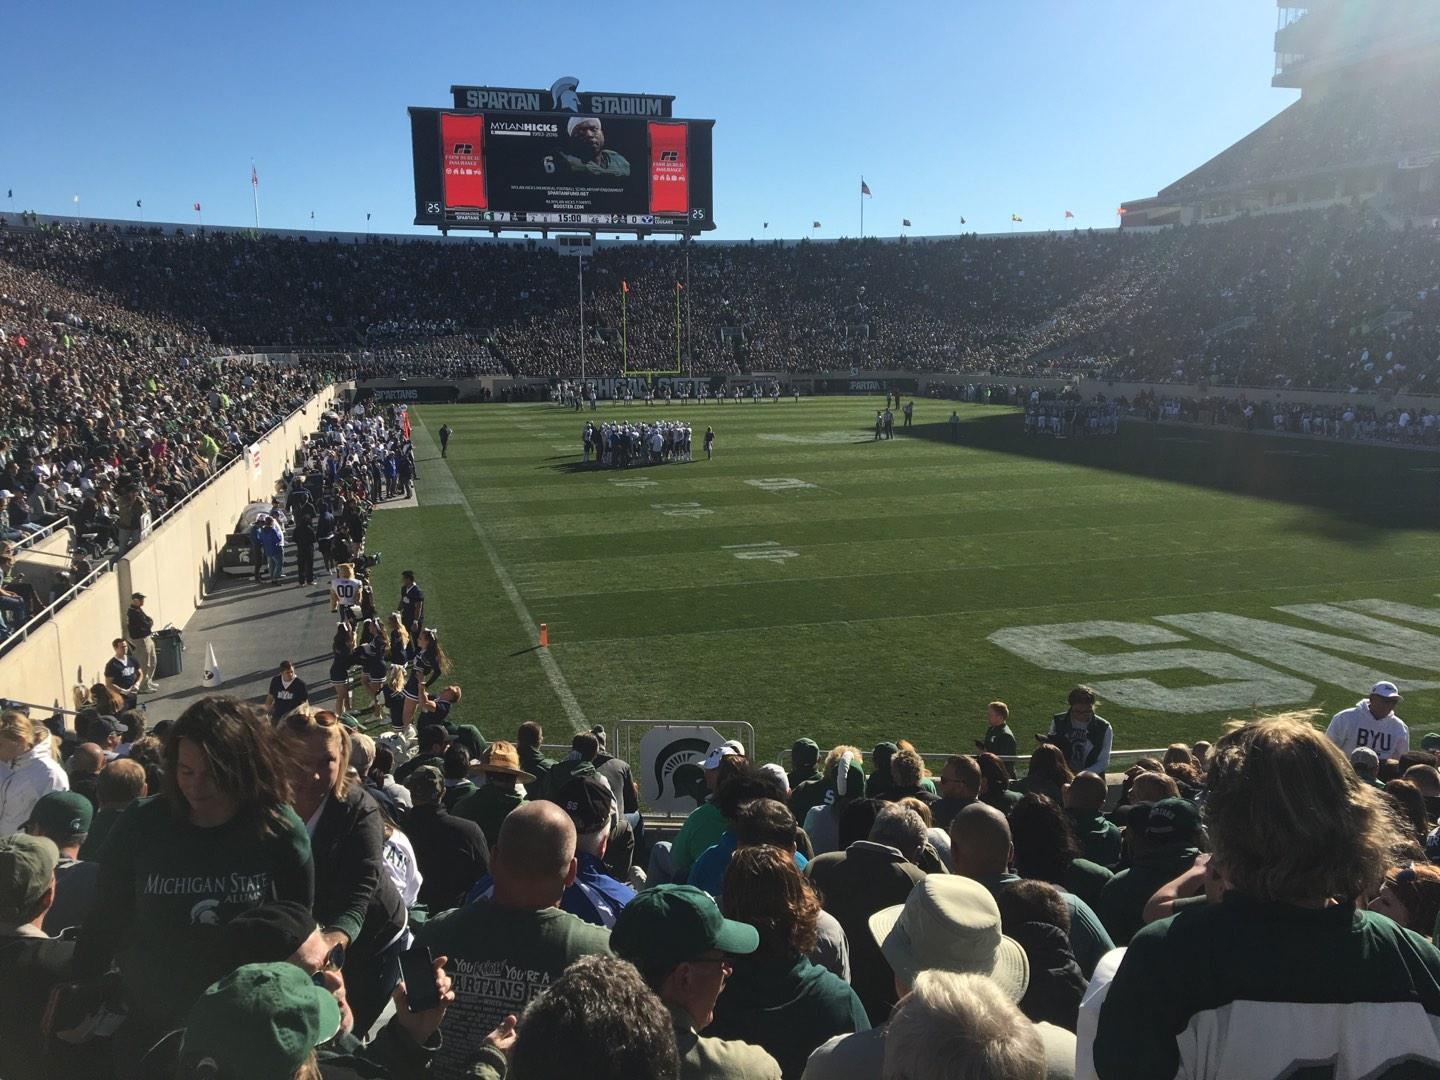 Spartan Stadium Section 3 Row 17 Seat 33